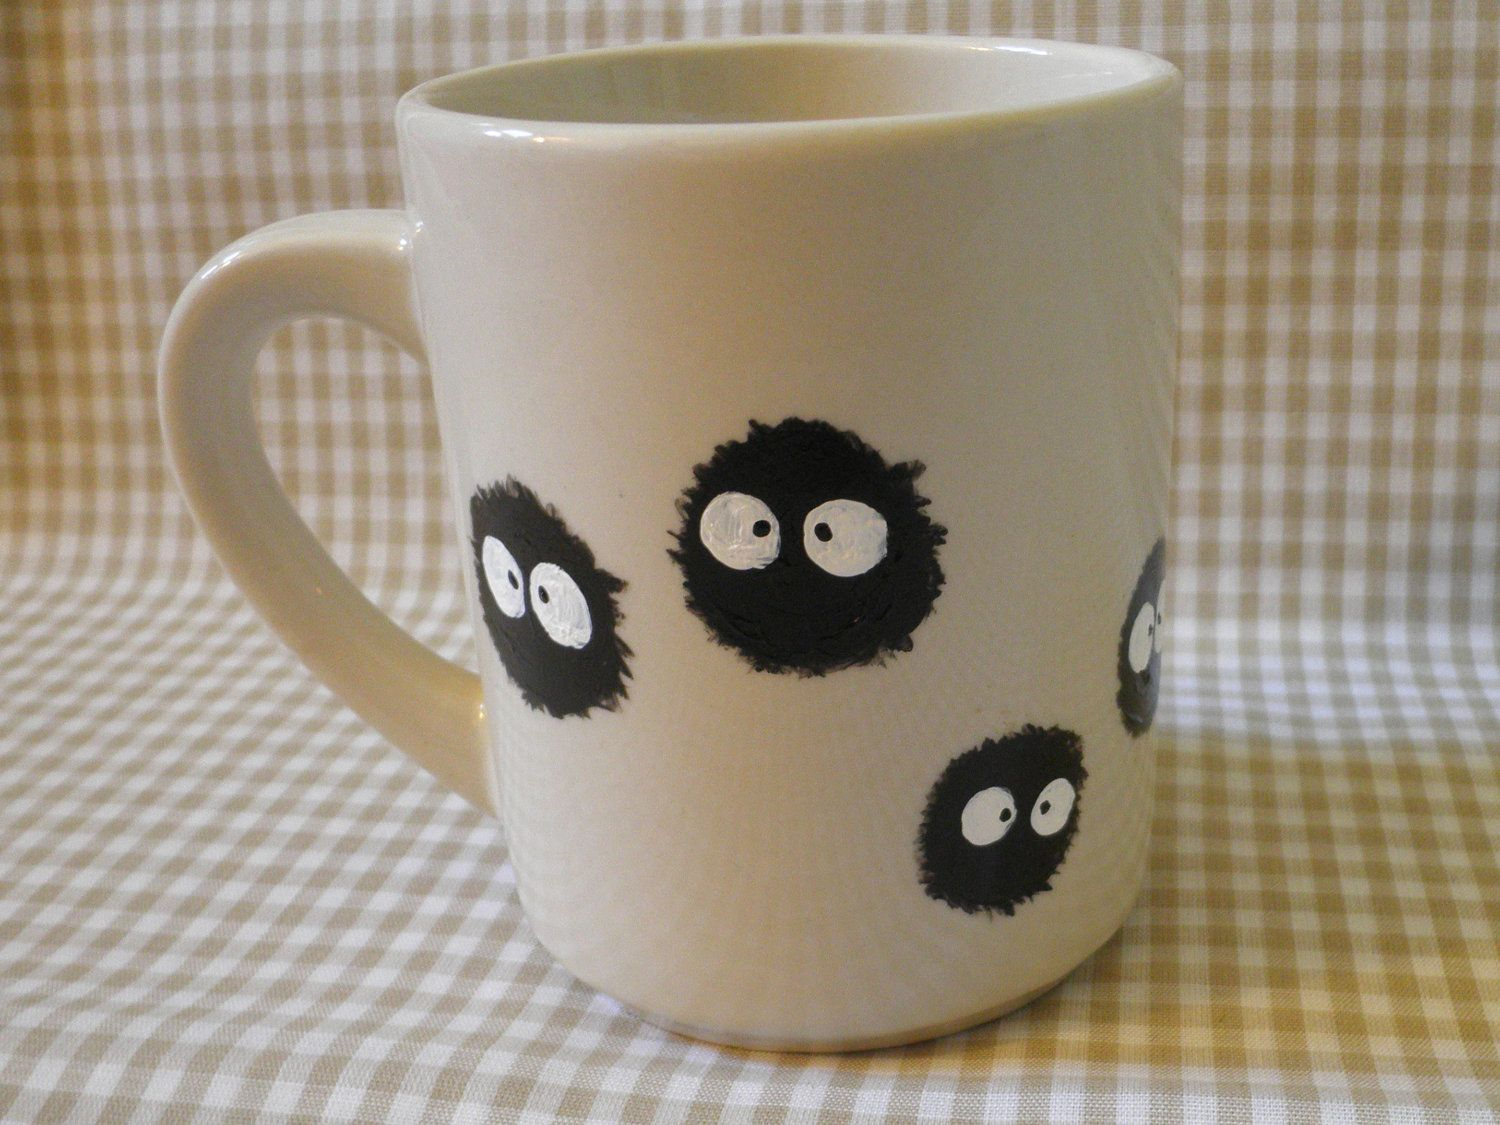 Coffee Art Etsy Soot Sprite Hand Painted Mug 14 00 Via Etsy I Can